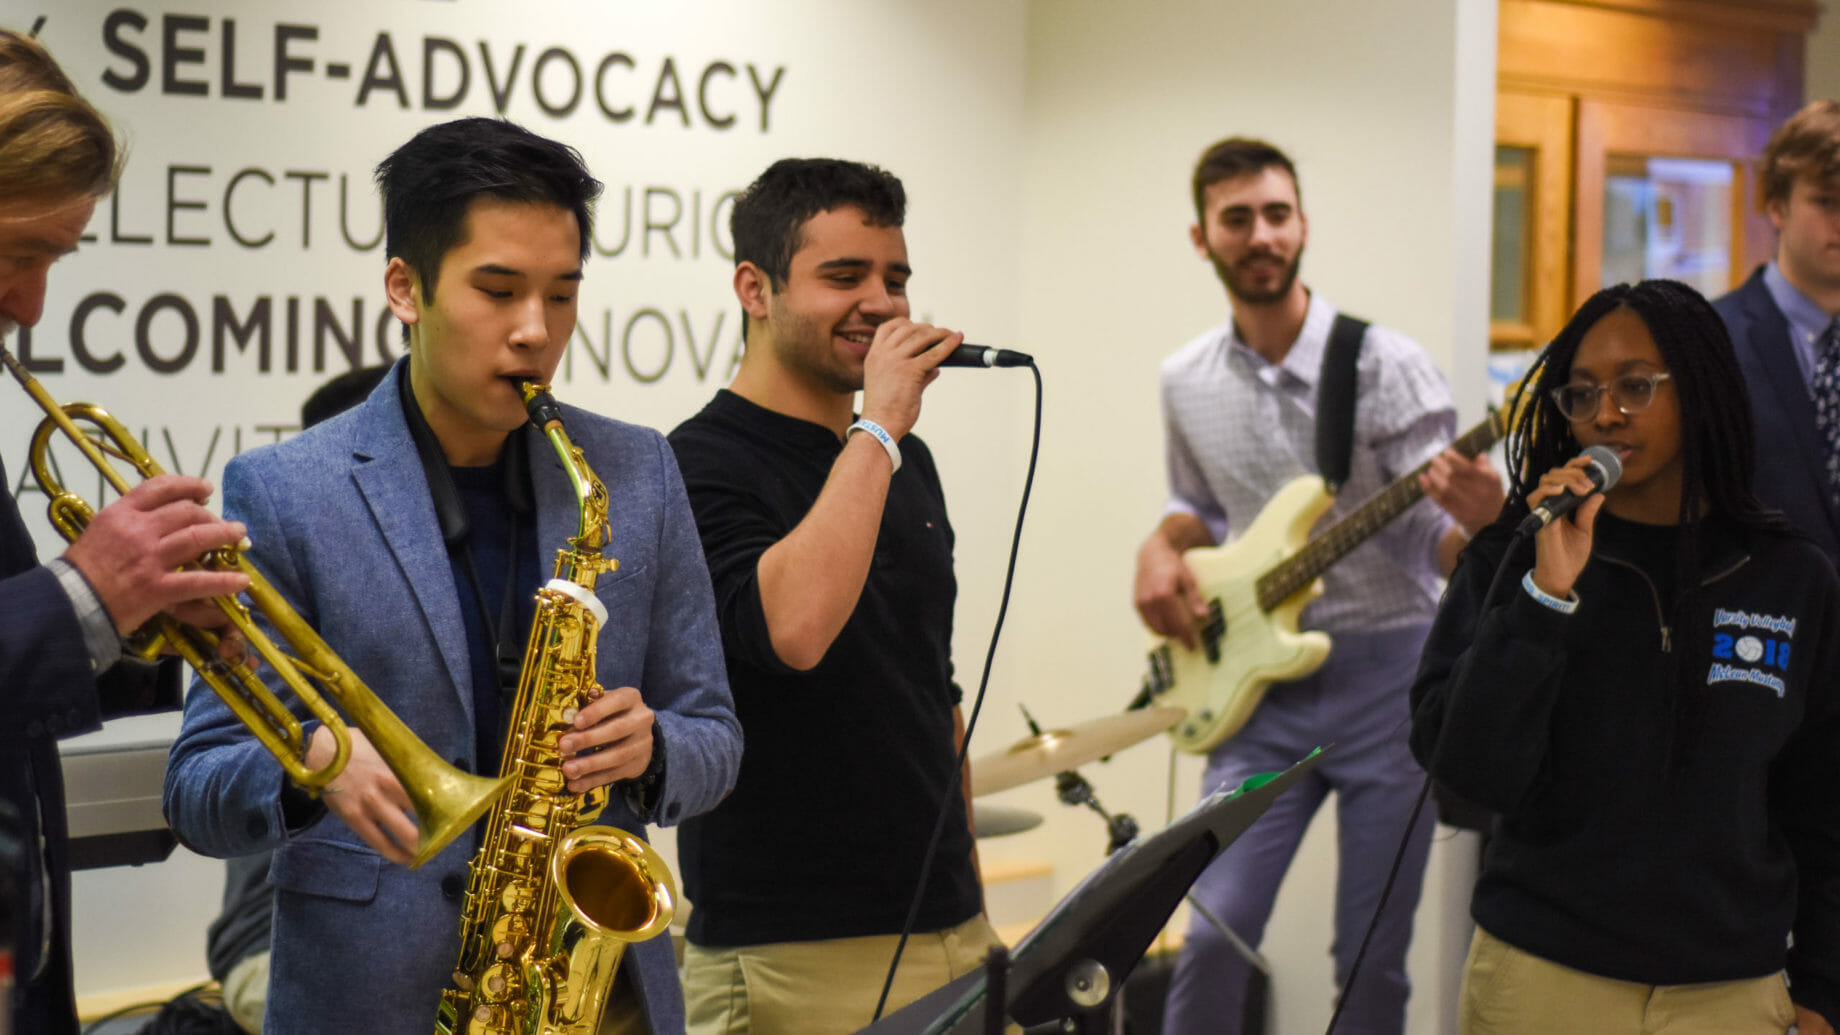 Students Performing Jazz Music